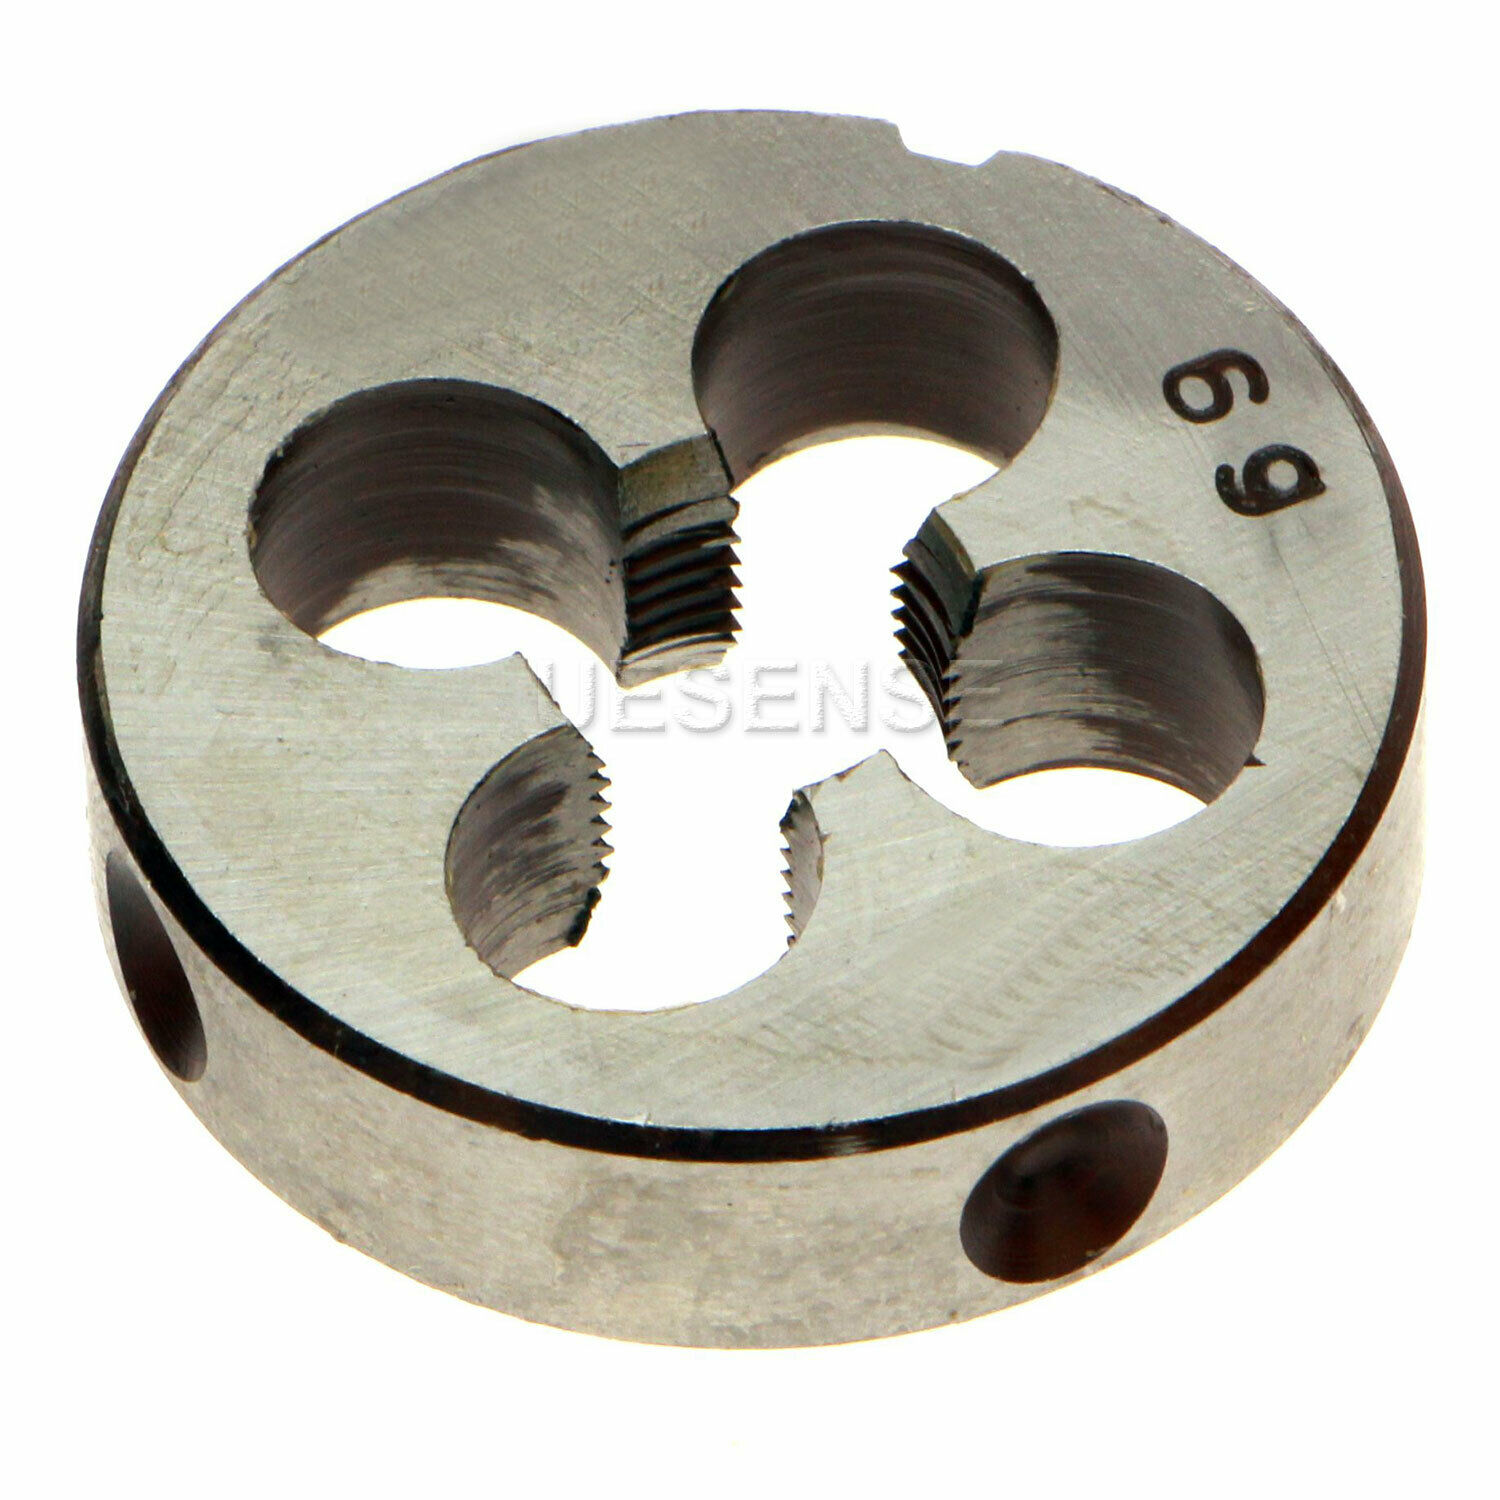 DORL/_A New 20mm x 1 Metric Right hand Die M20 x 1.0mm Pitch